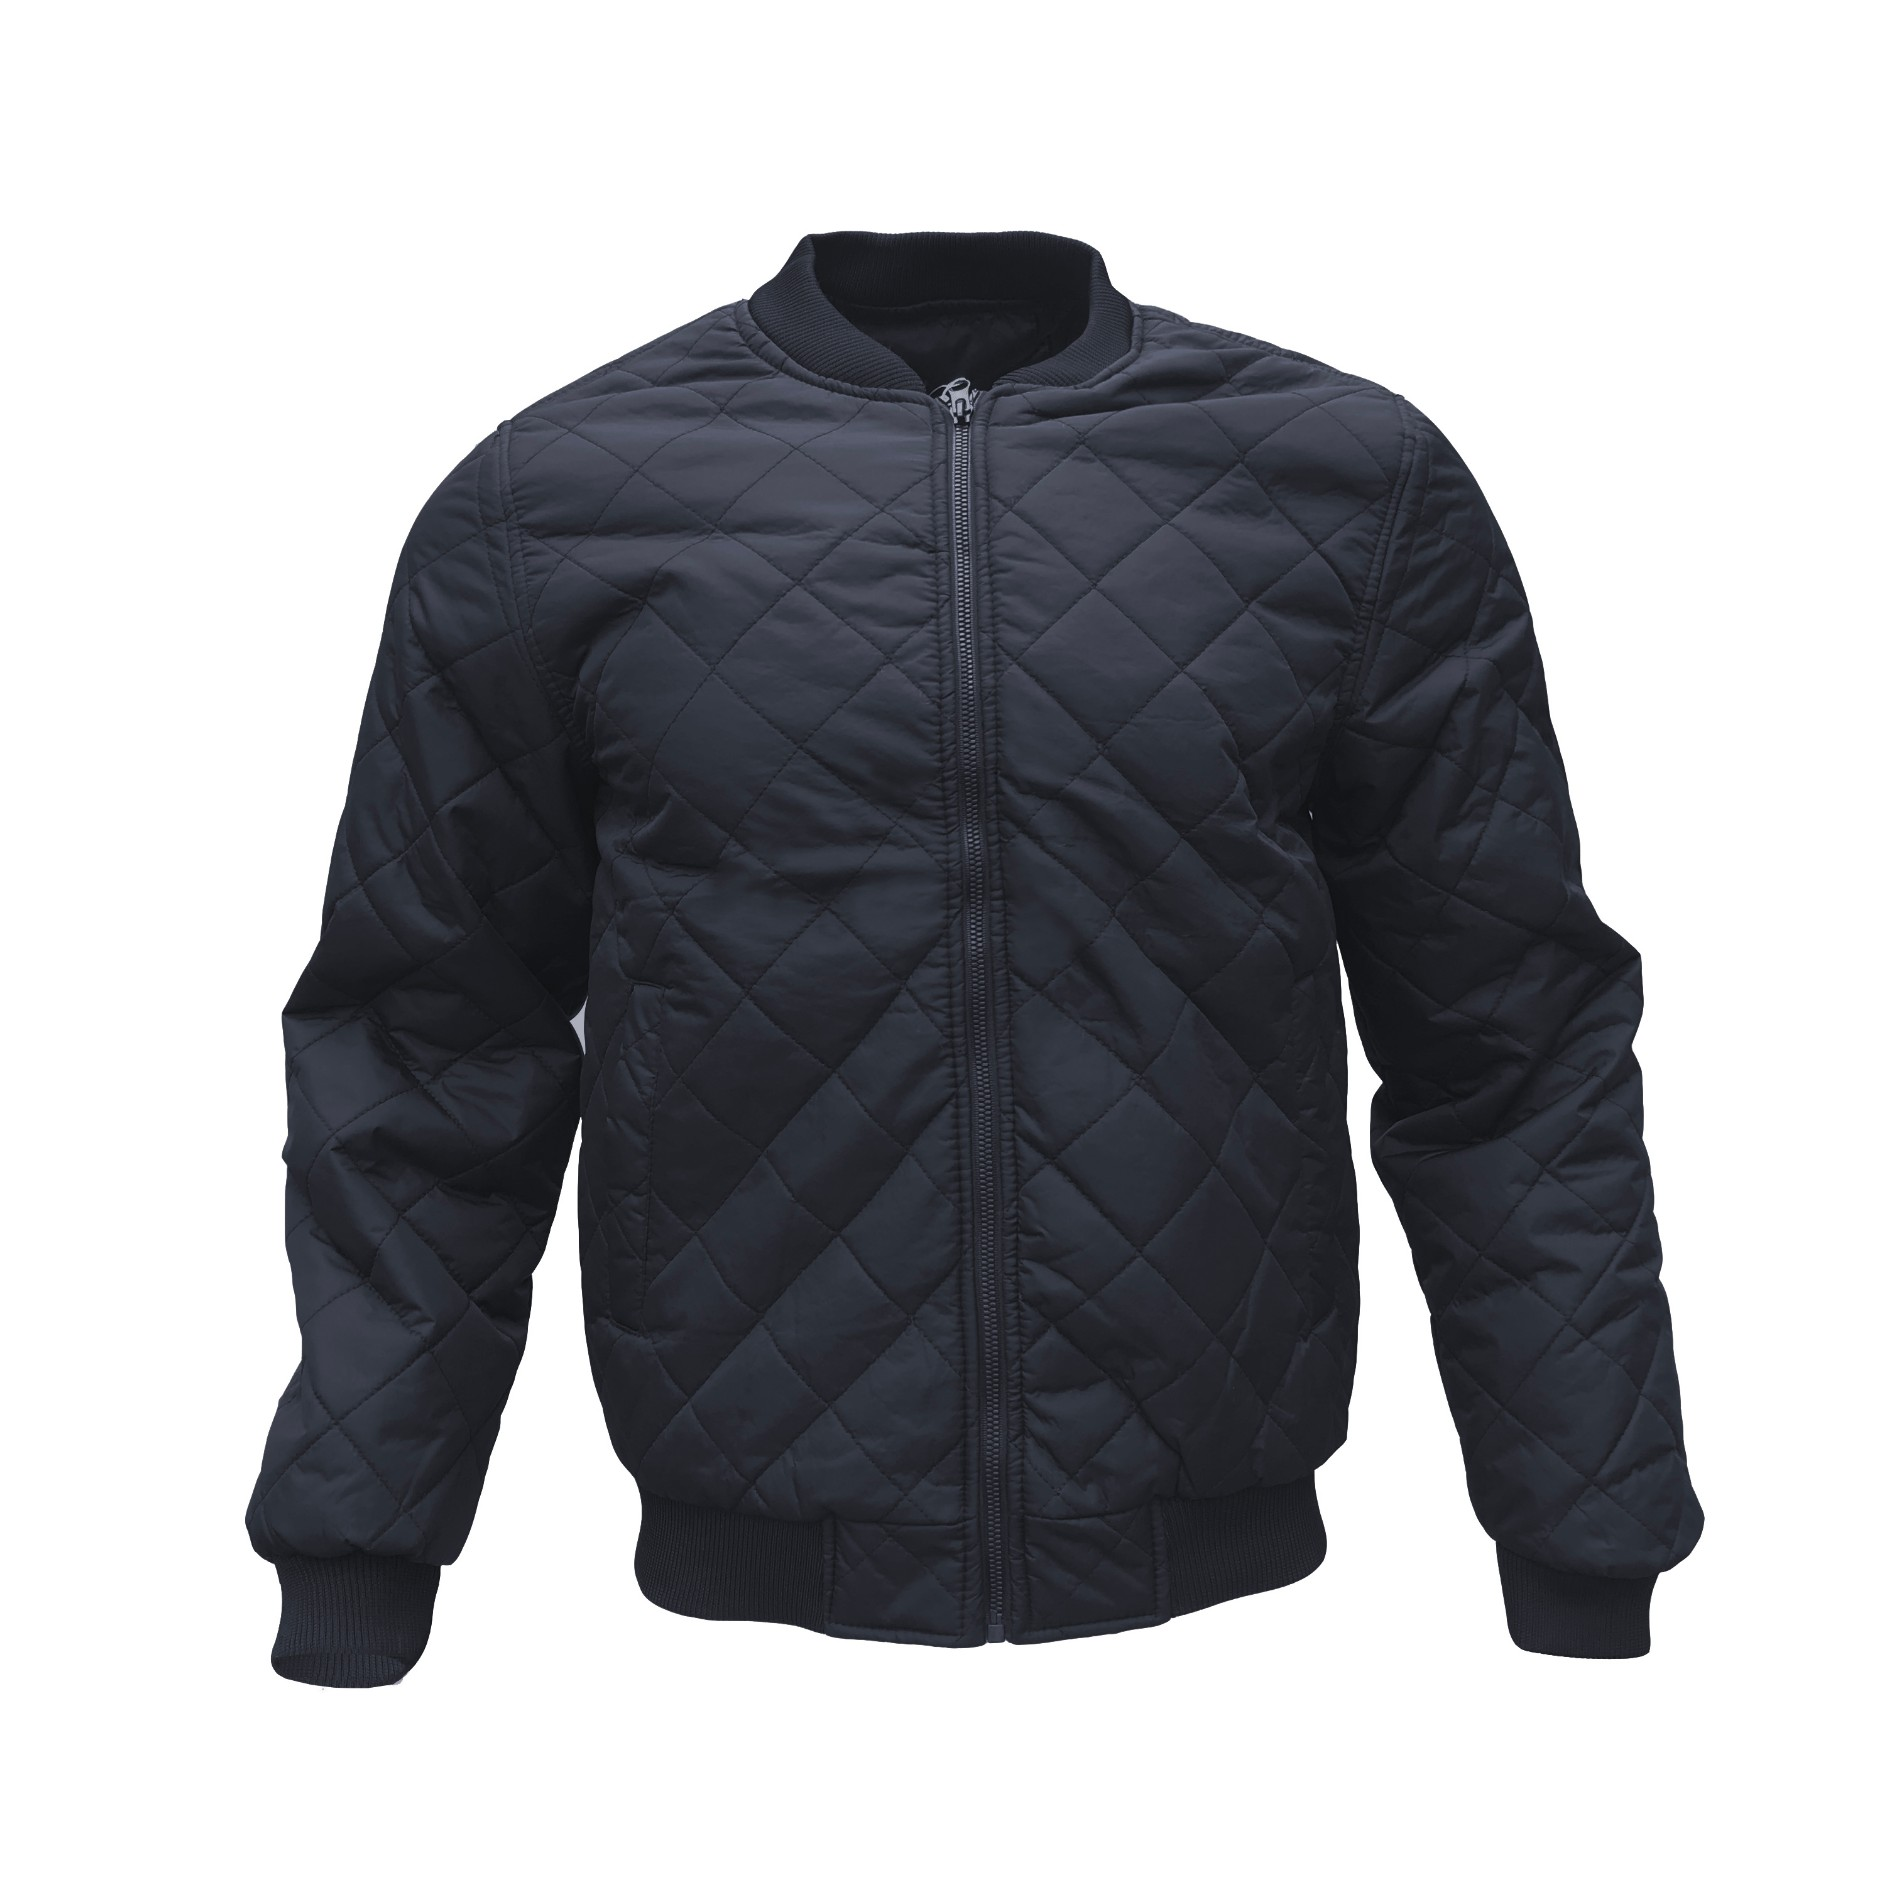 High Quality Padded Stand Collar Jackets Winter Jackets For Men